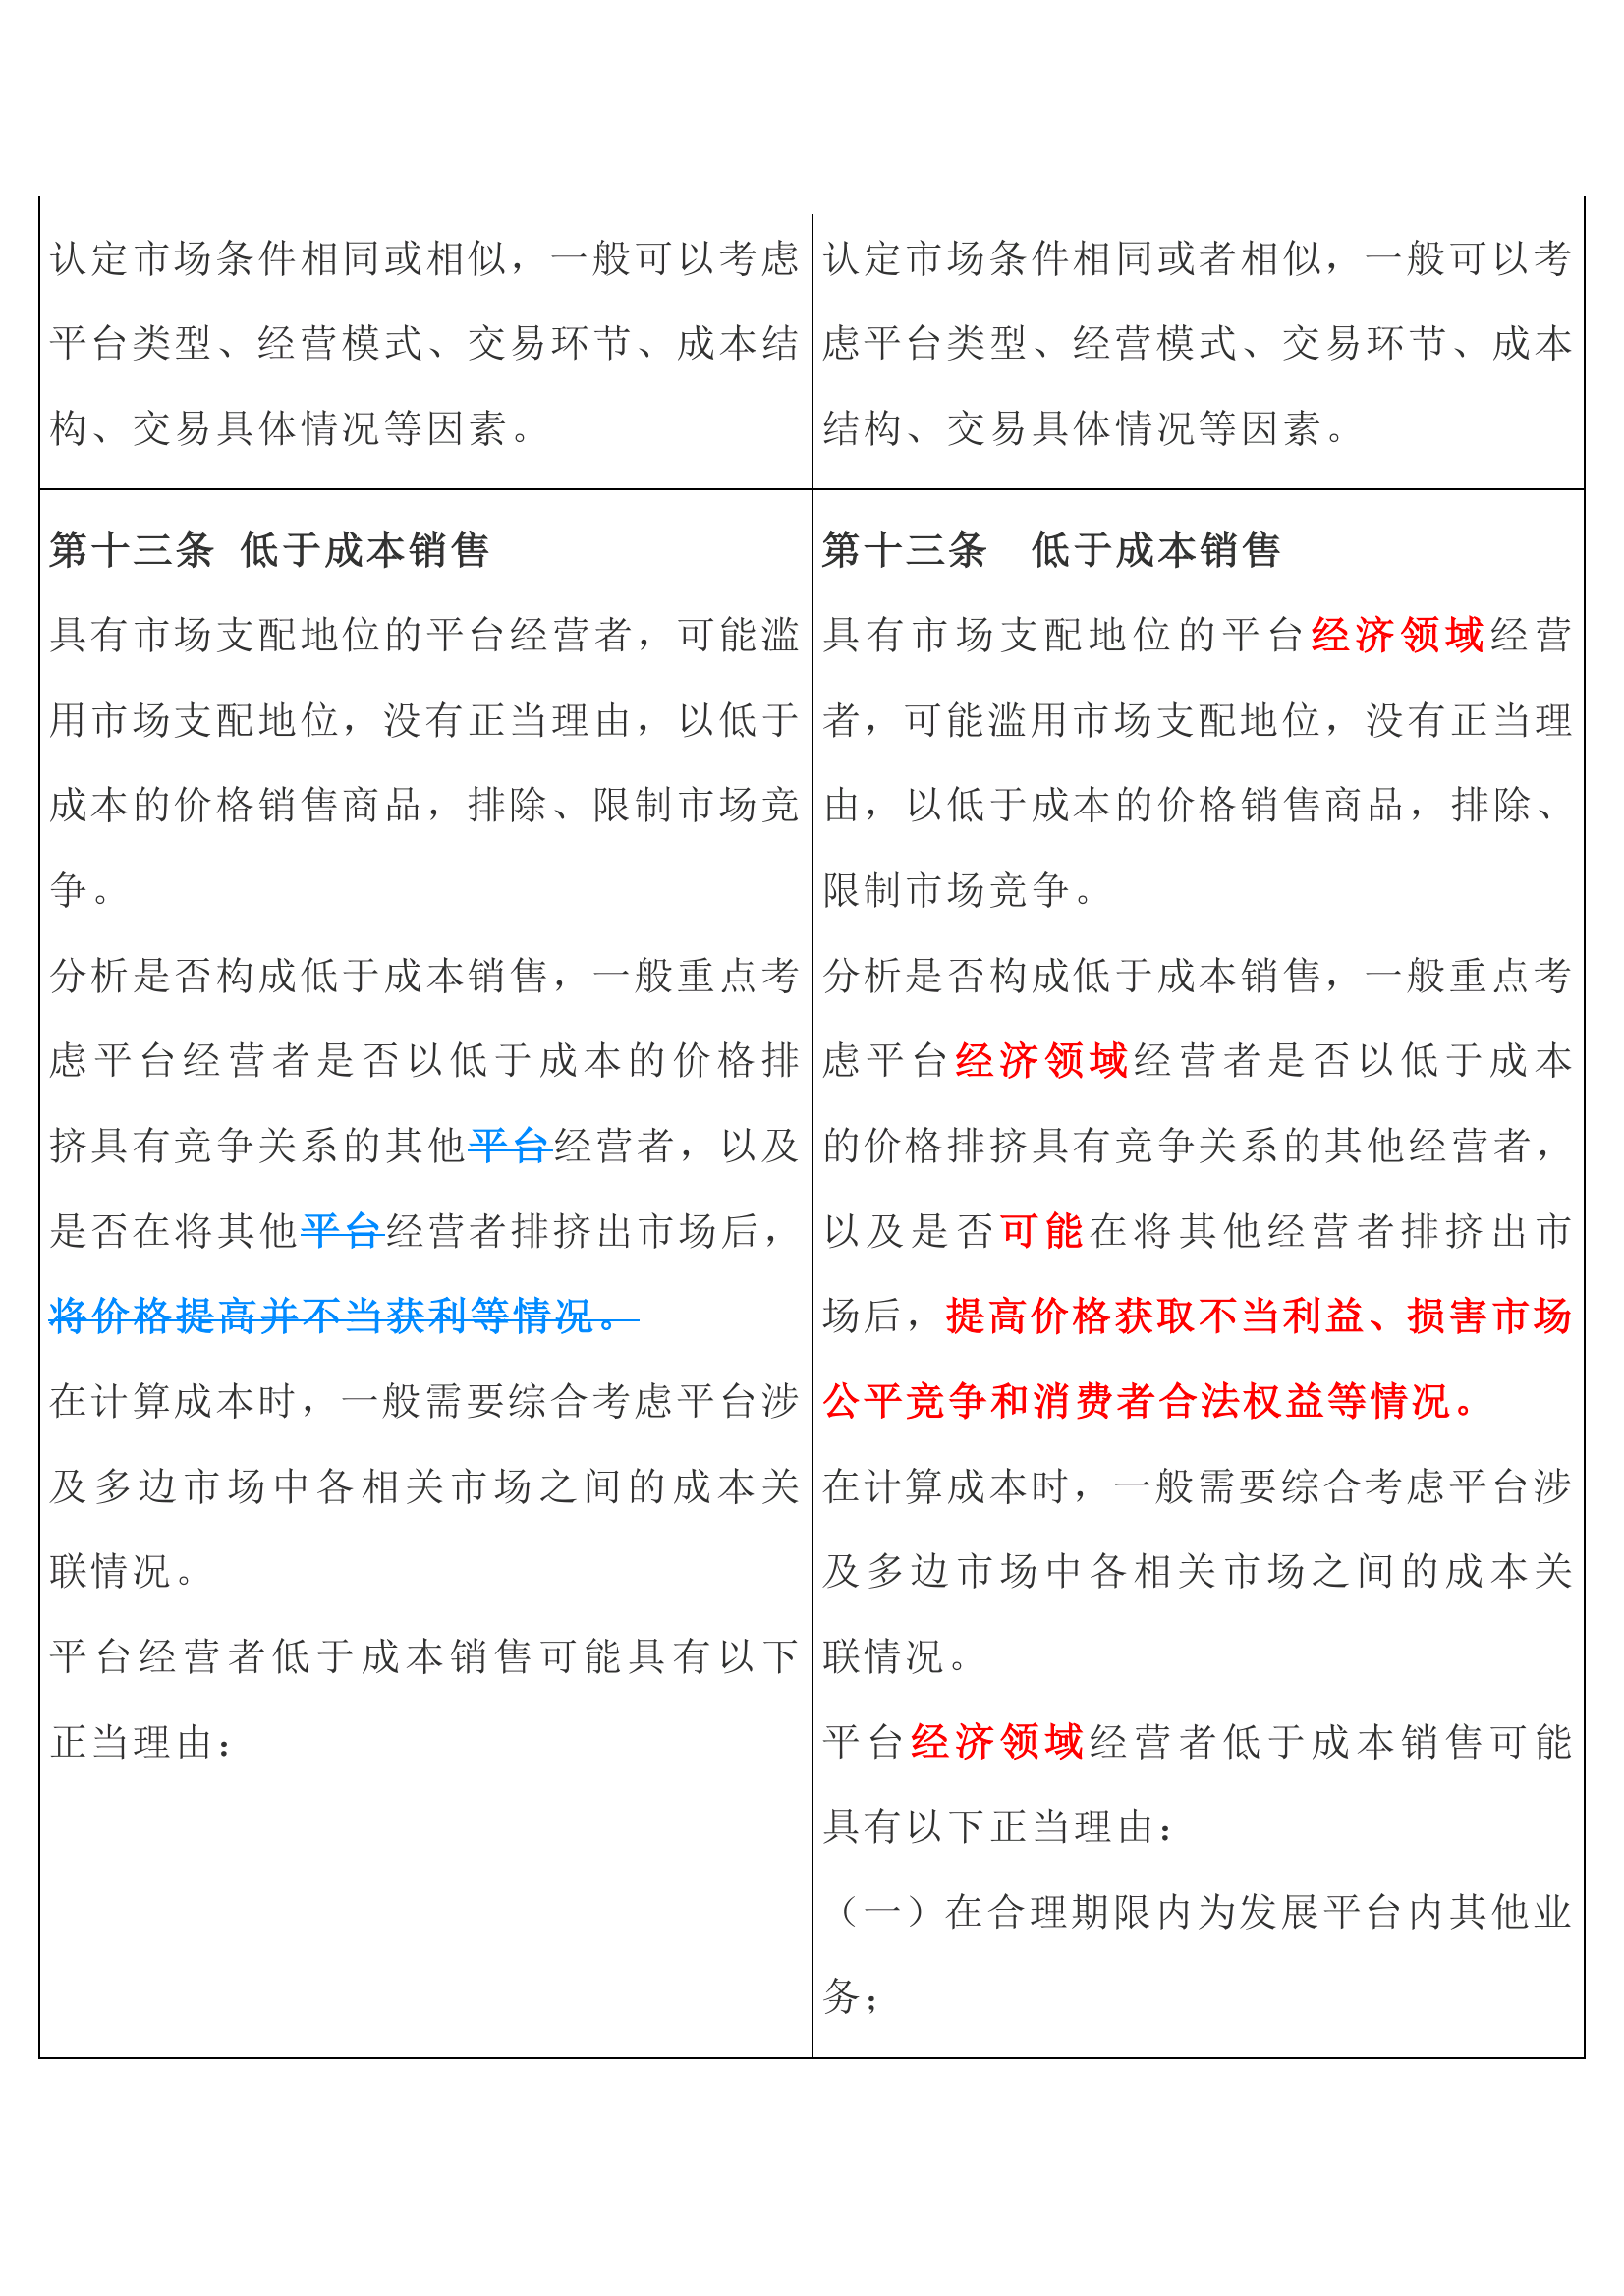 share_pdf_exportpage16(2).png